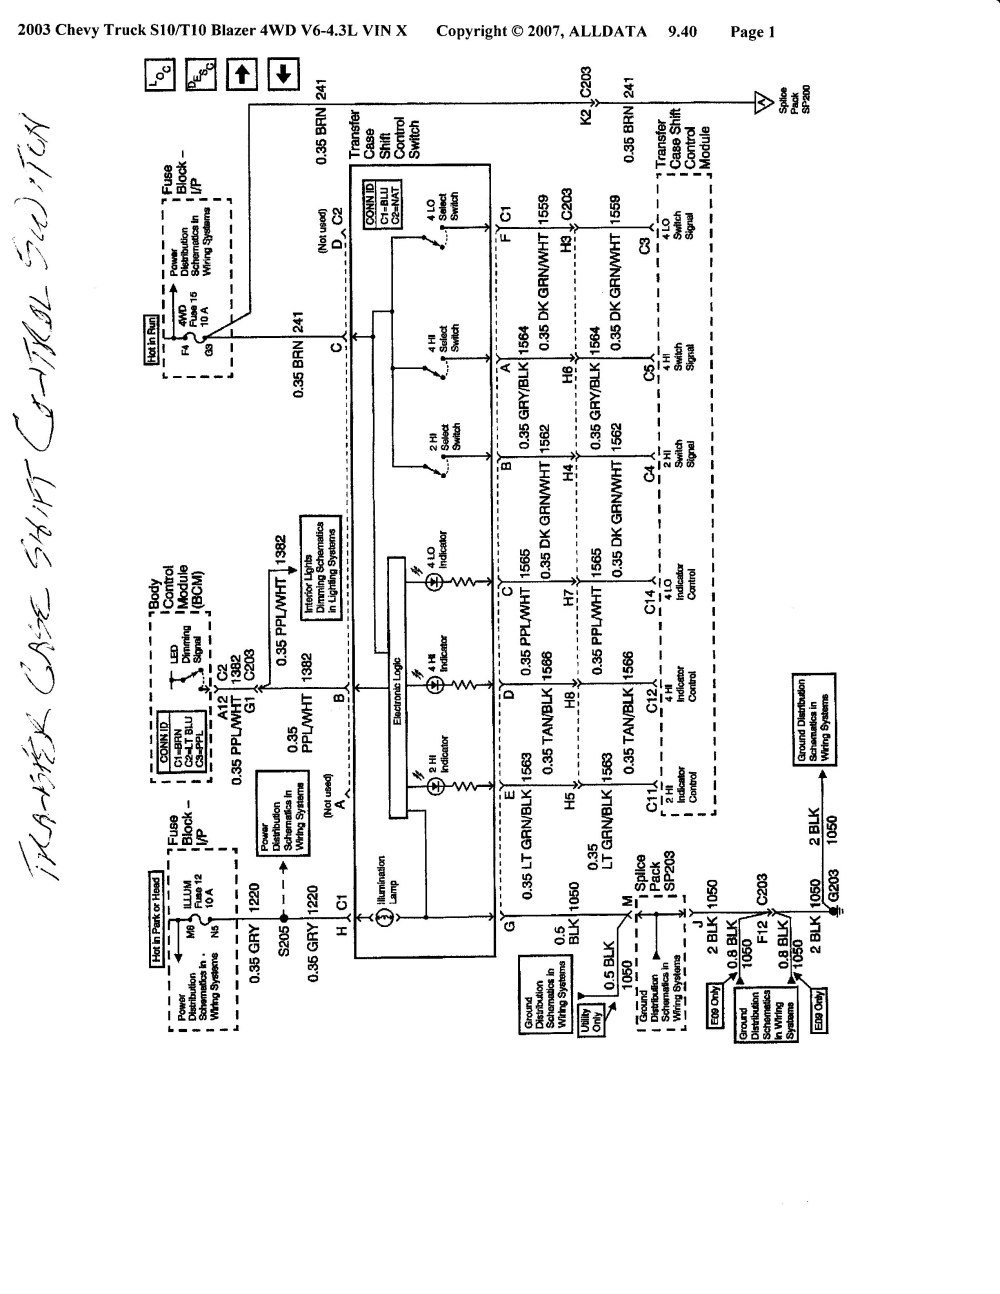 medium resolution of chevy s10 transfer case wiring diagram wiring diagram expert chevy blazer transfer case diagram on chevy s10 transfer case wiring